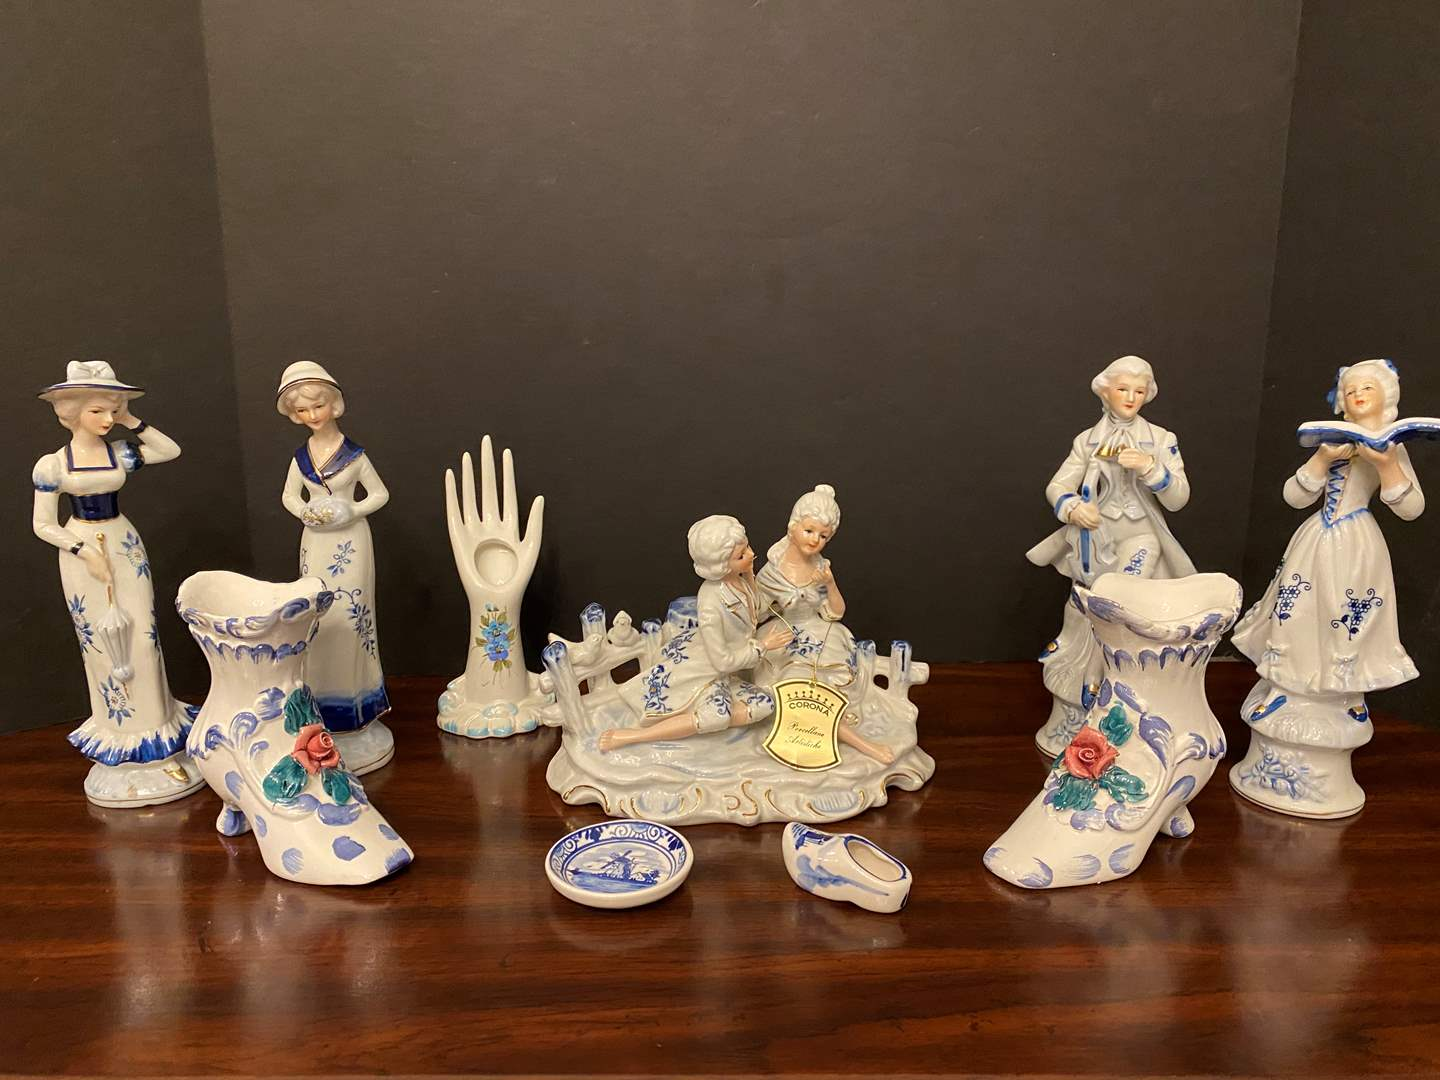 Lot # 17 - Nice Collection of Delft Blue Porcelain Figurines - See Pictures for Makers Mark (main image)